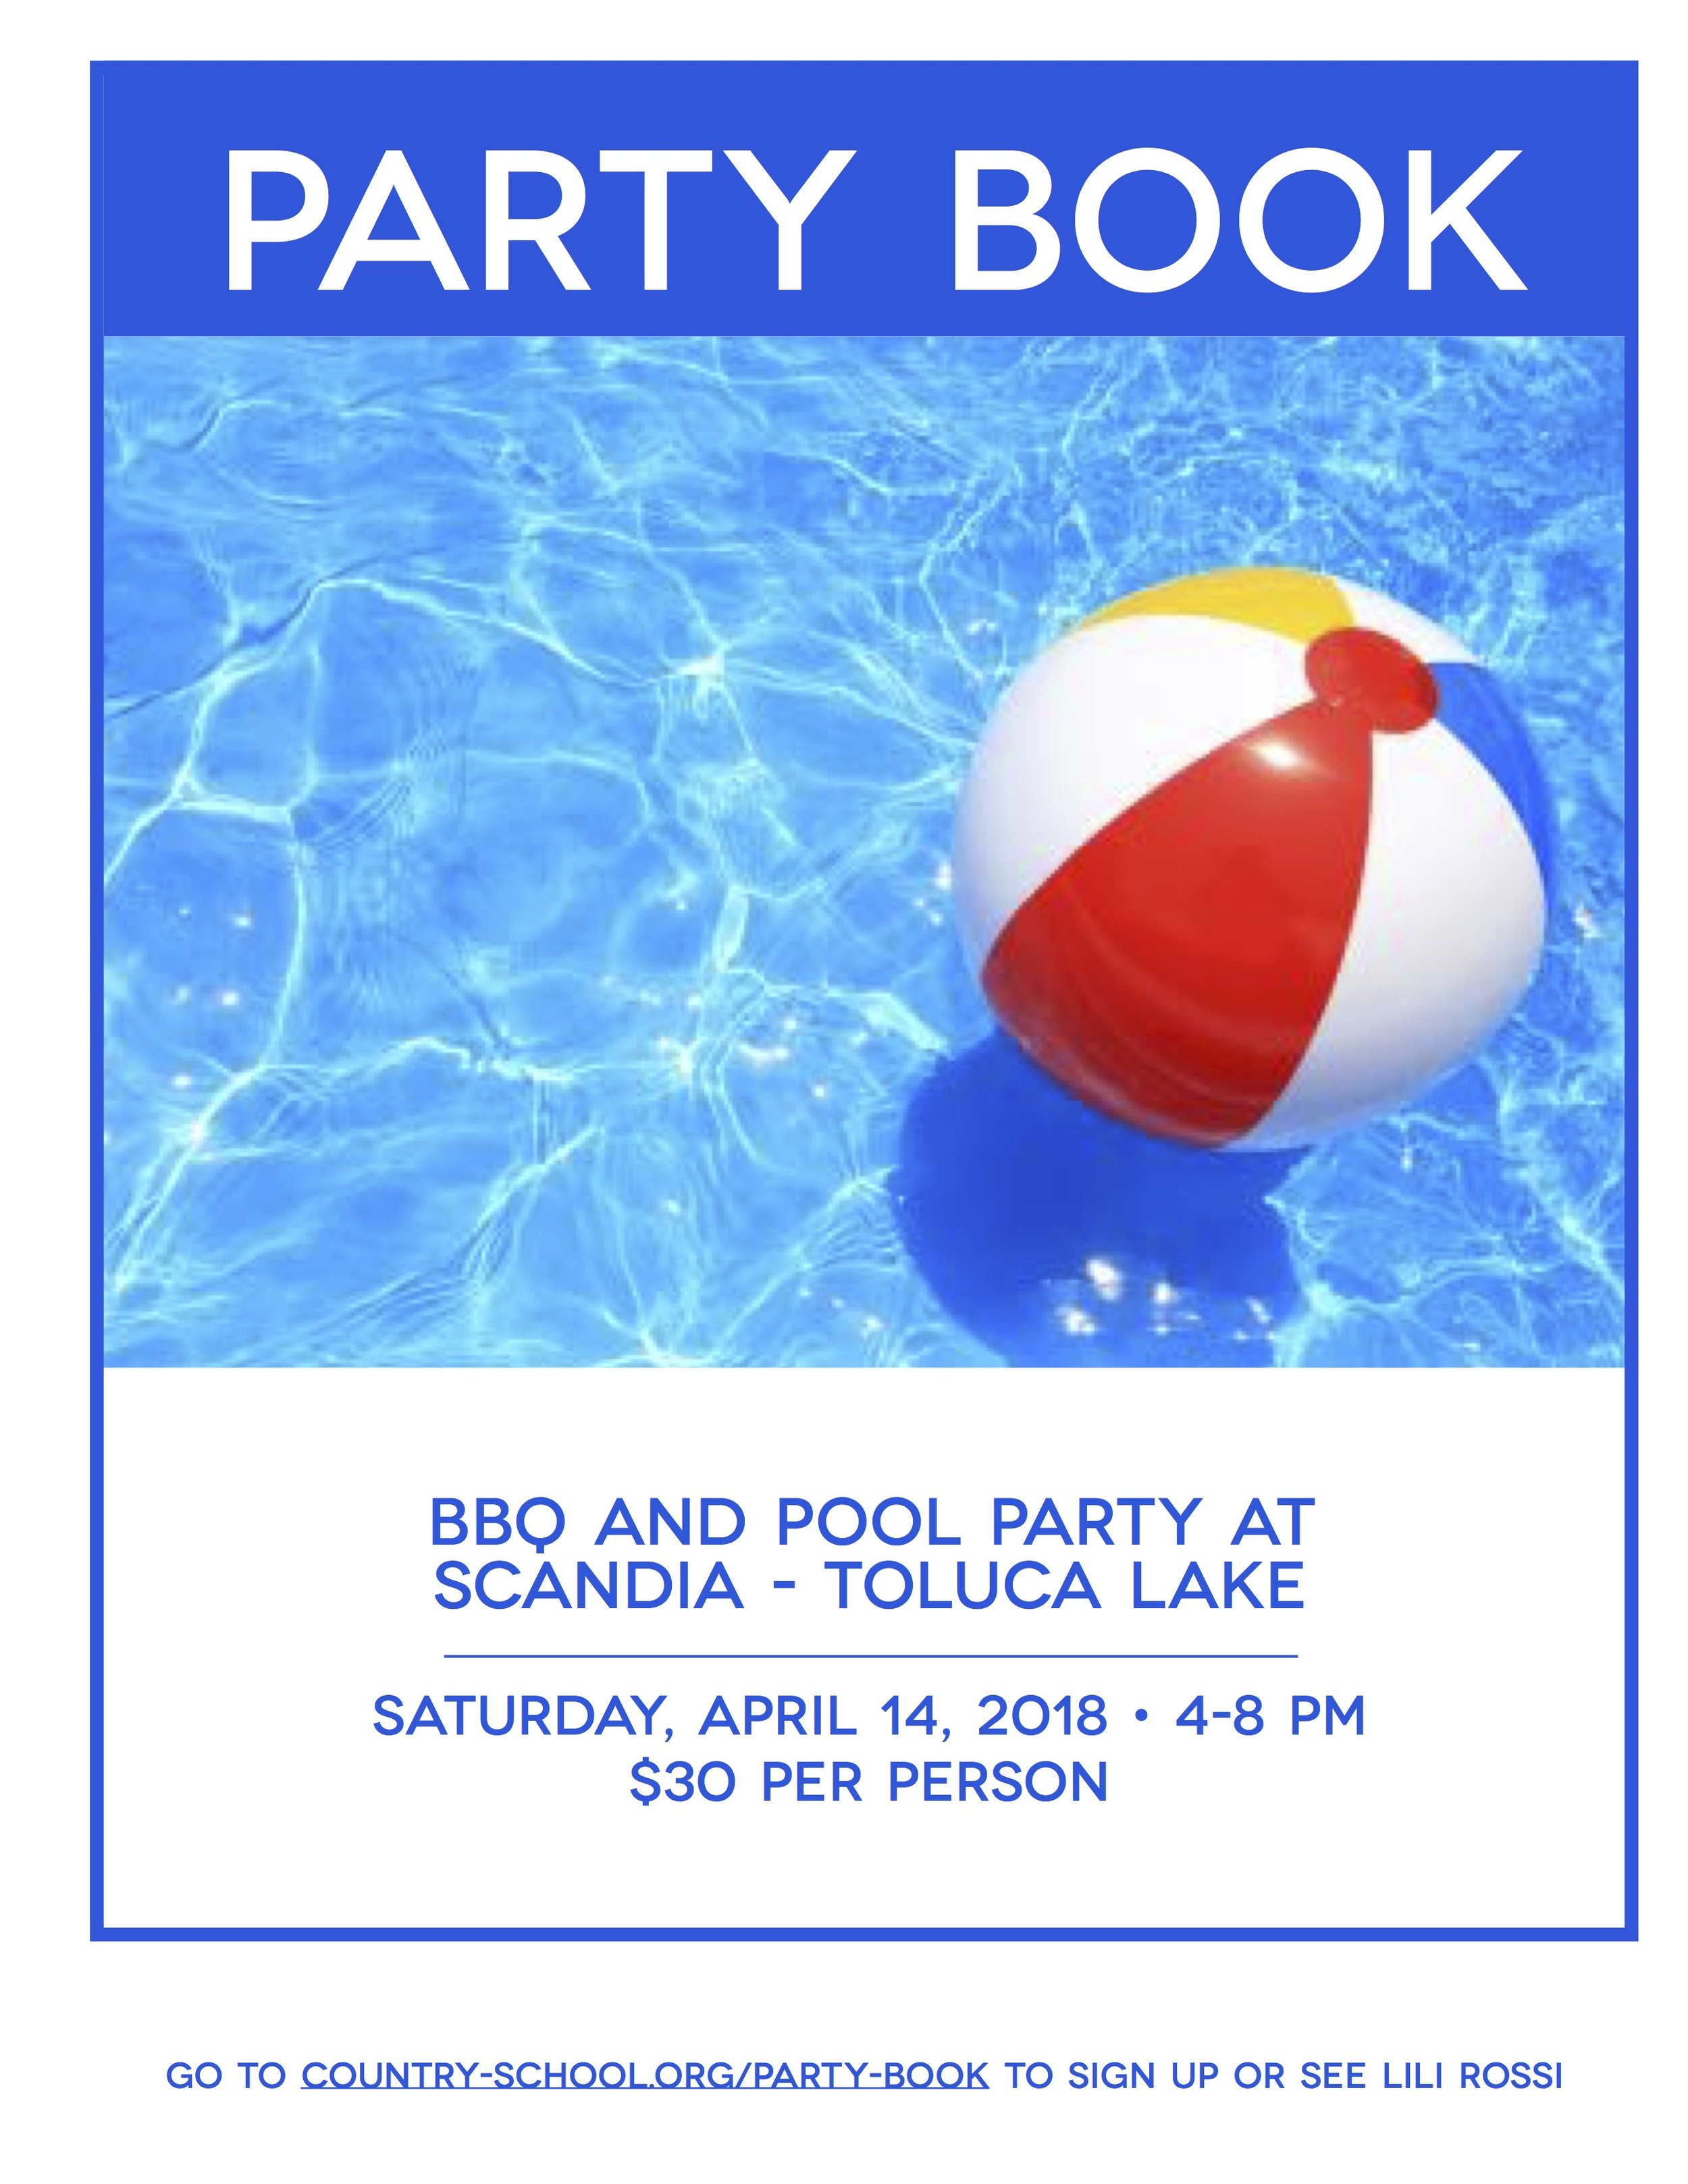 PartyBook_poolparty_letter.jpg